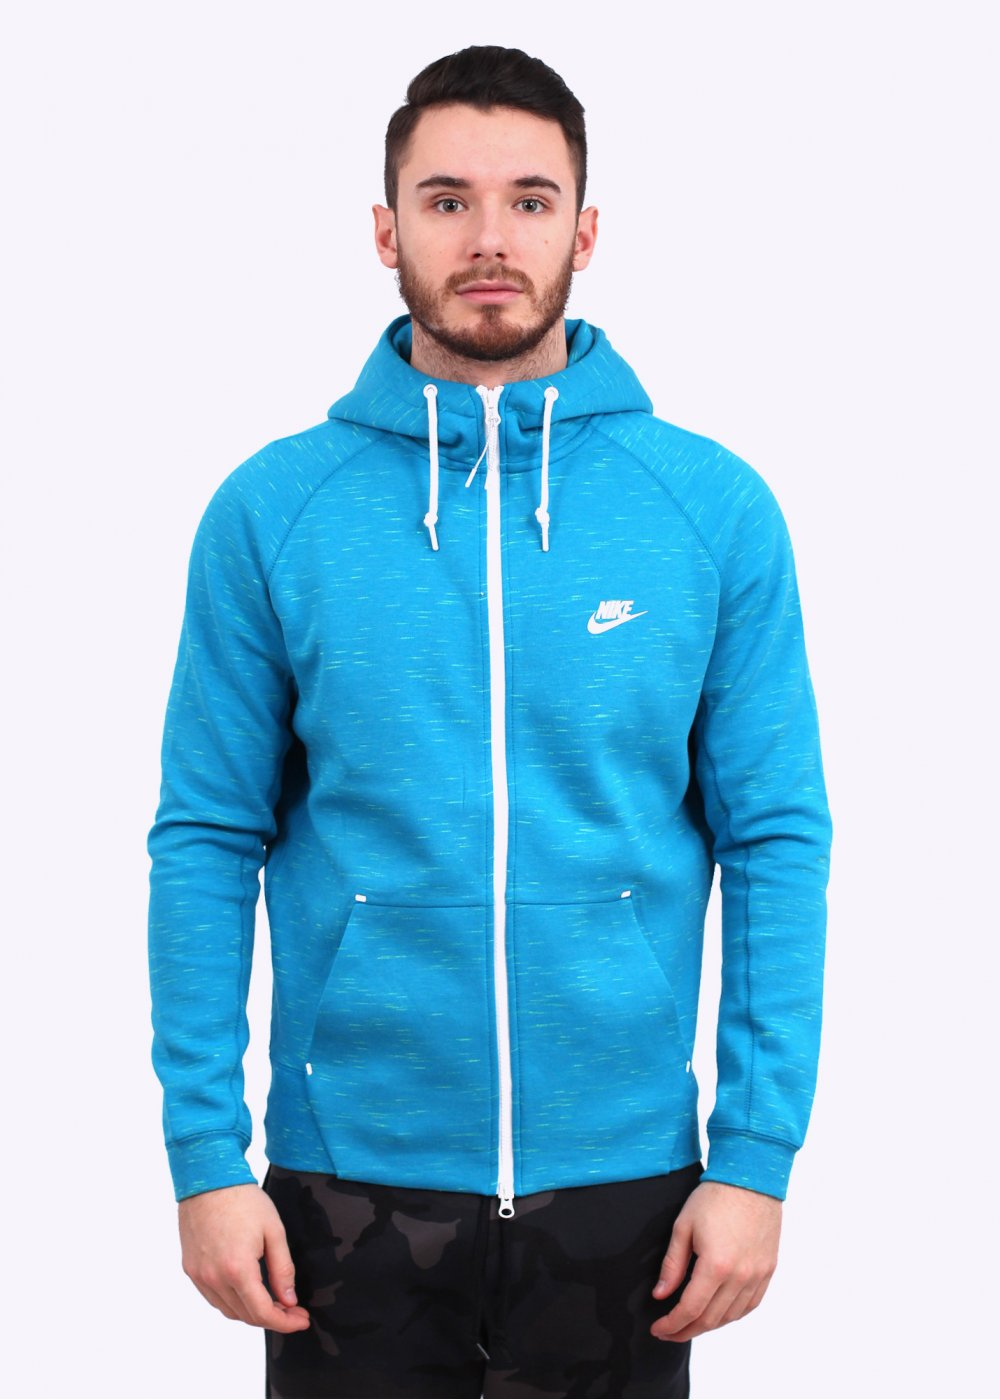 3061759c2ac5 Nike Tech Fleece AW77 Hoodie - Light Blue